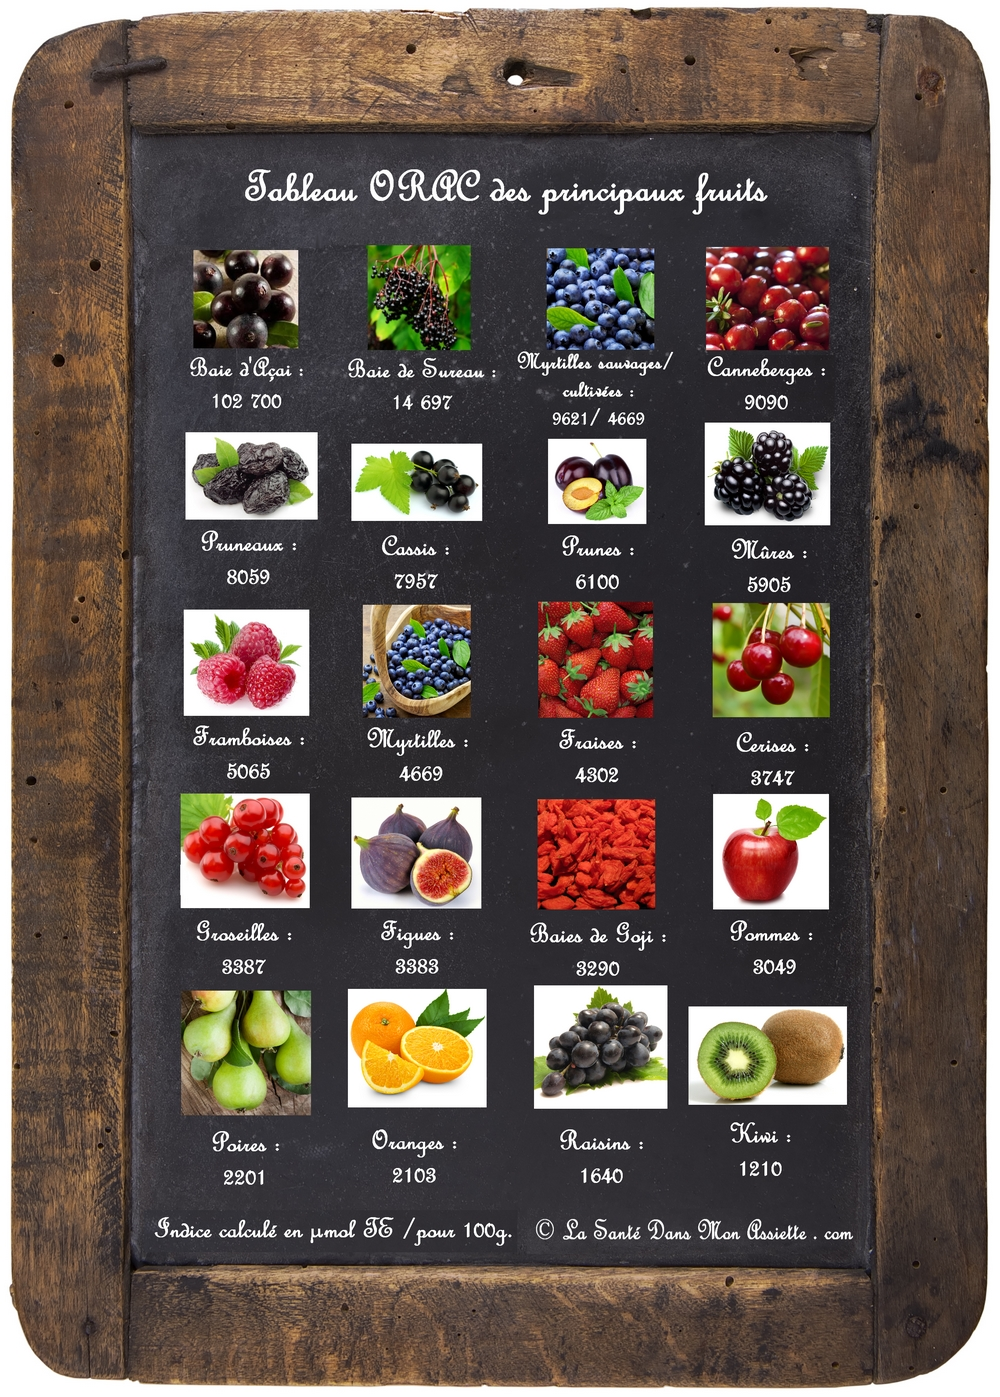 20 fruits riches en antioxydants